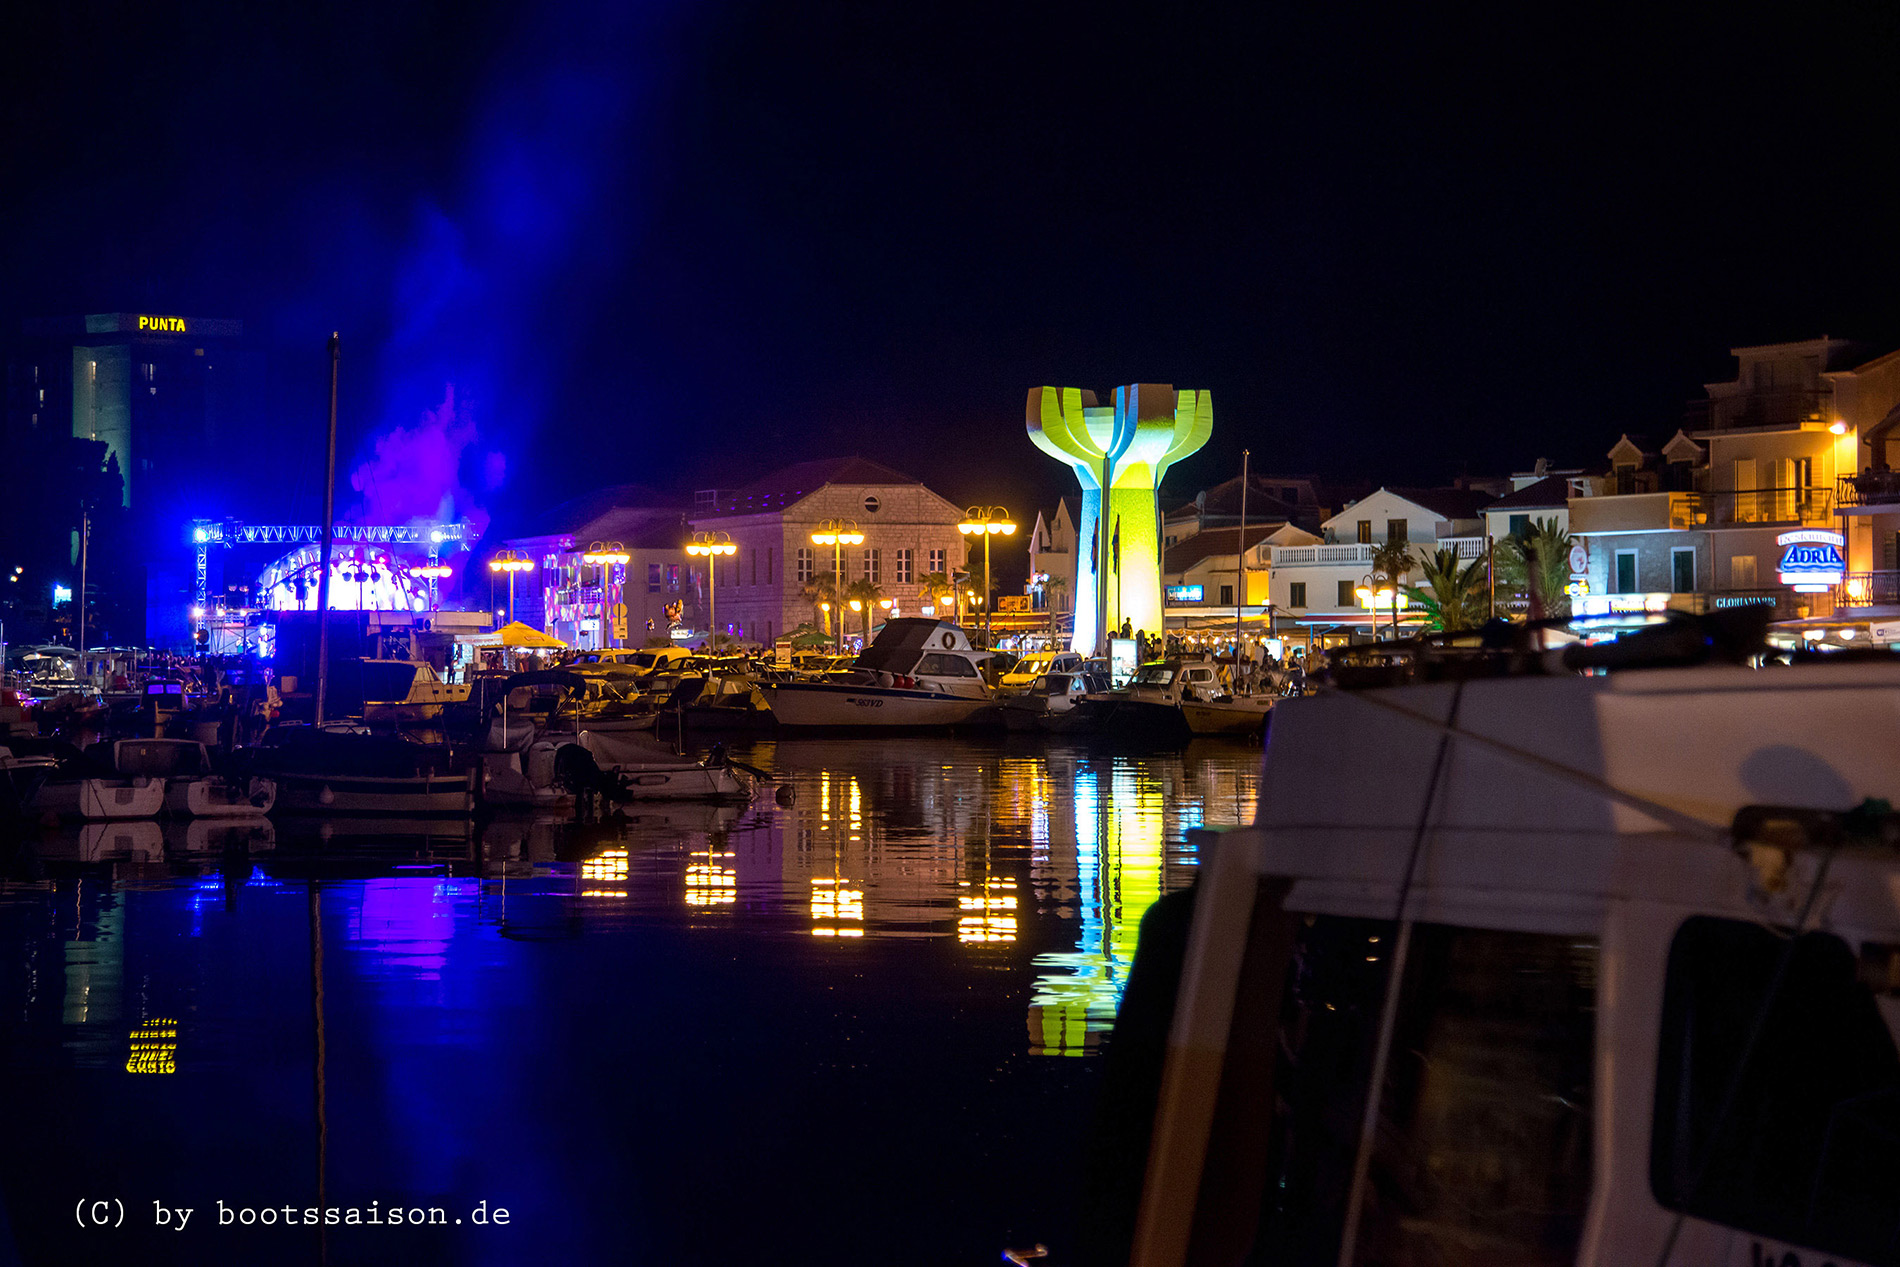 Vodice night view